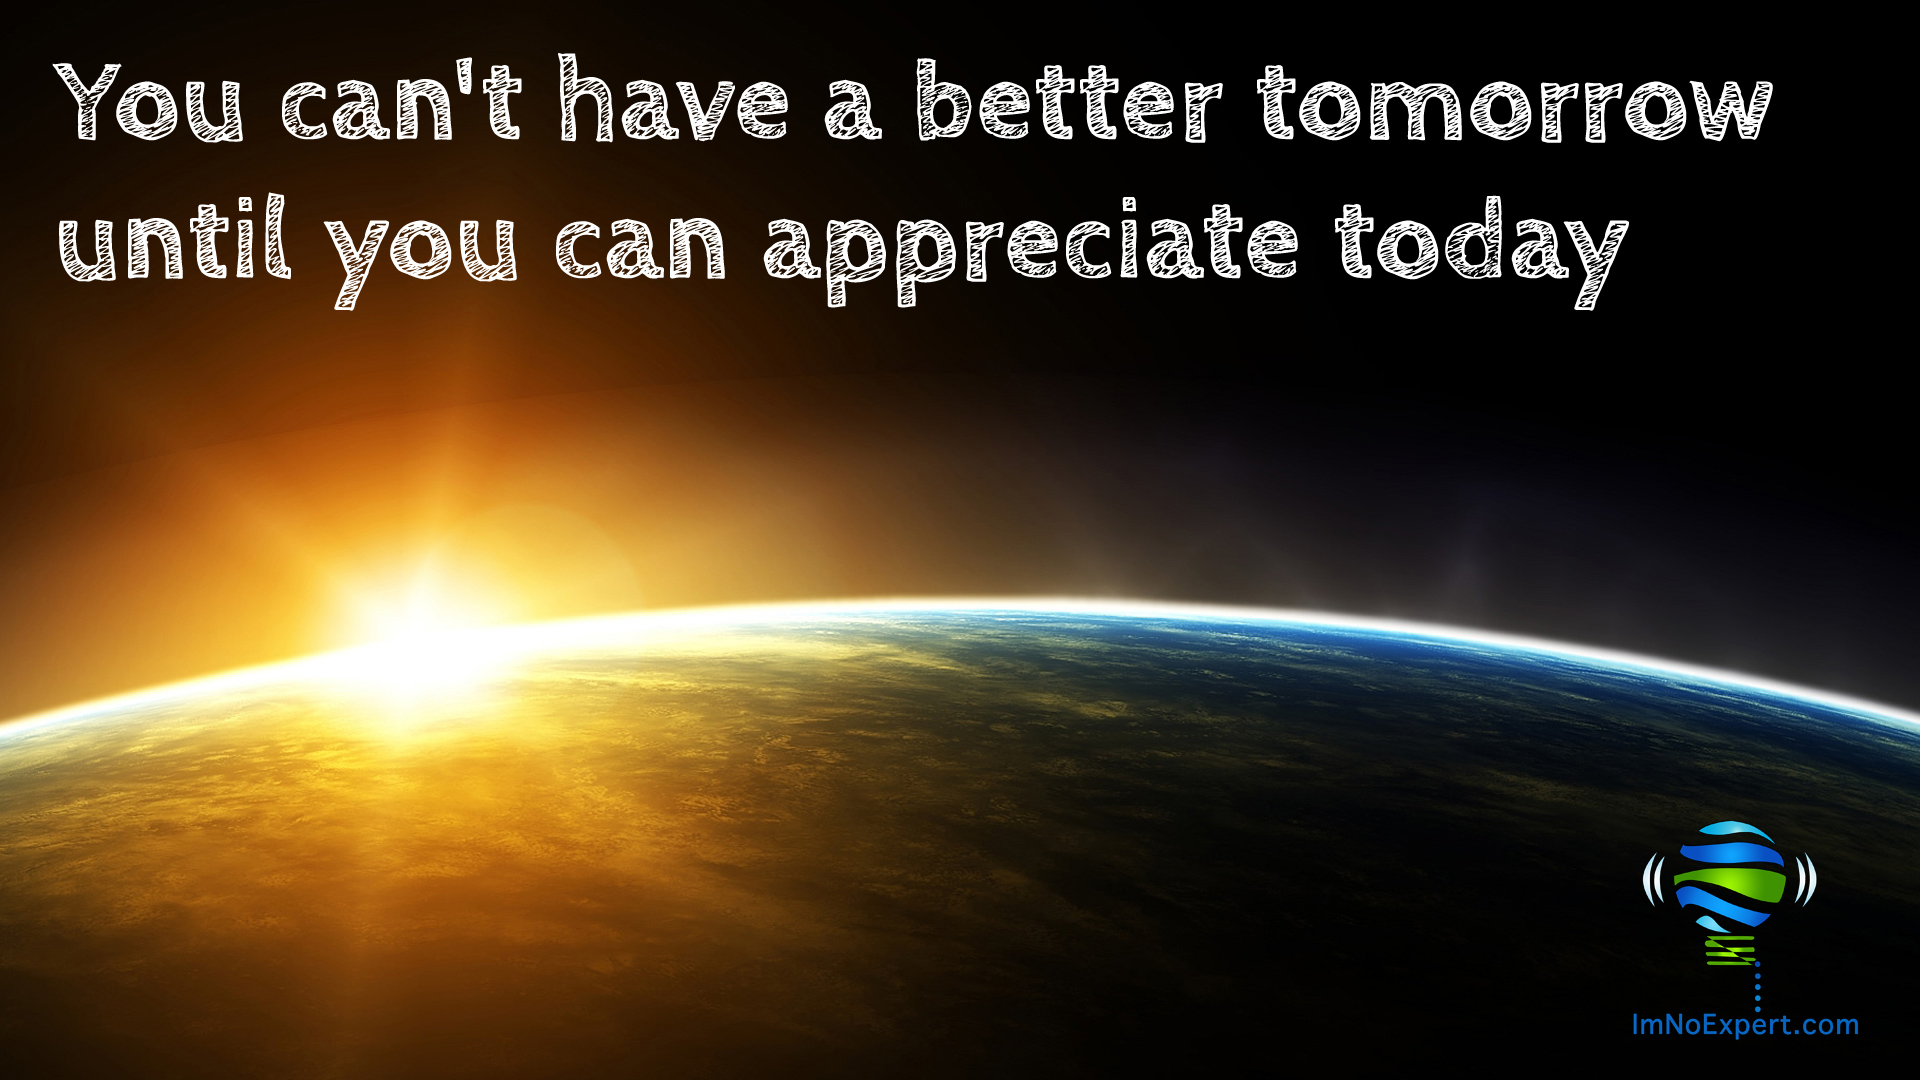 The Principle Of An Optimist Tomorrow Will Be: Accepting Today Will Lead Us To Tomorrow